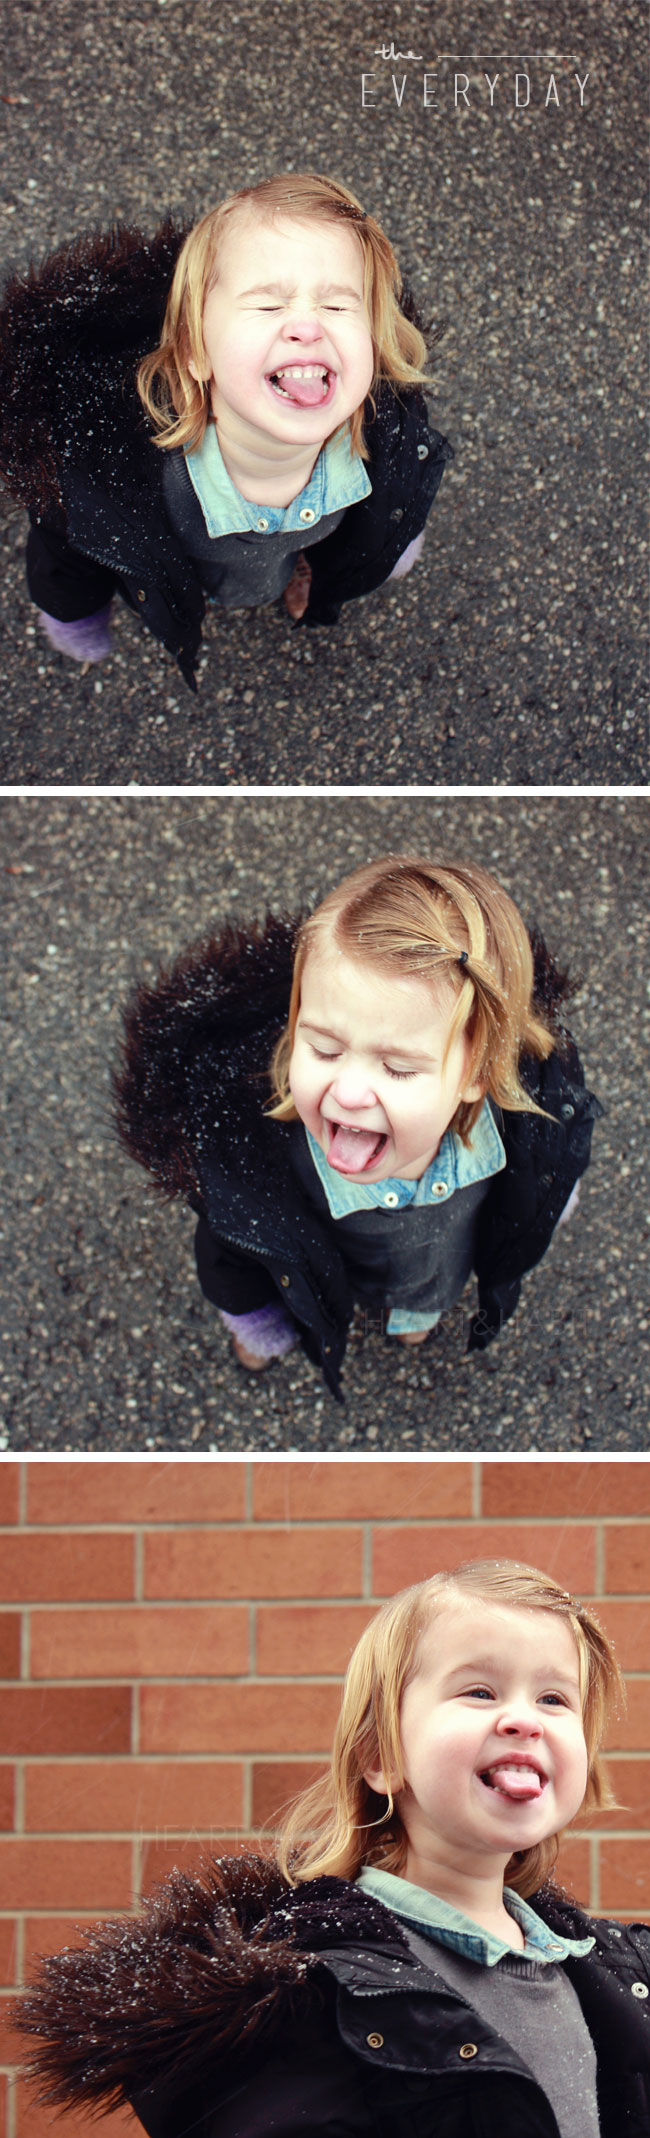 kids style, everyday moments, catching snowflakes, enjoying childhood